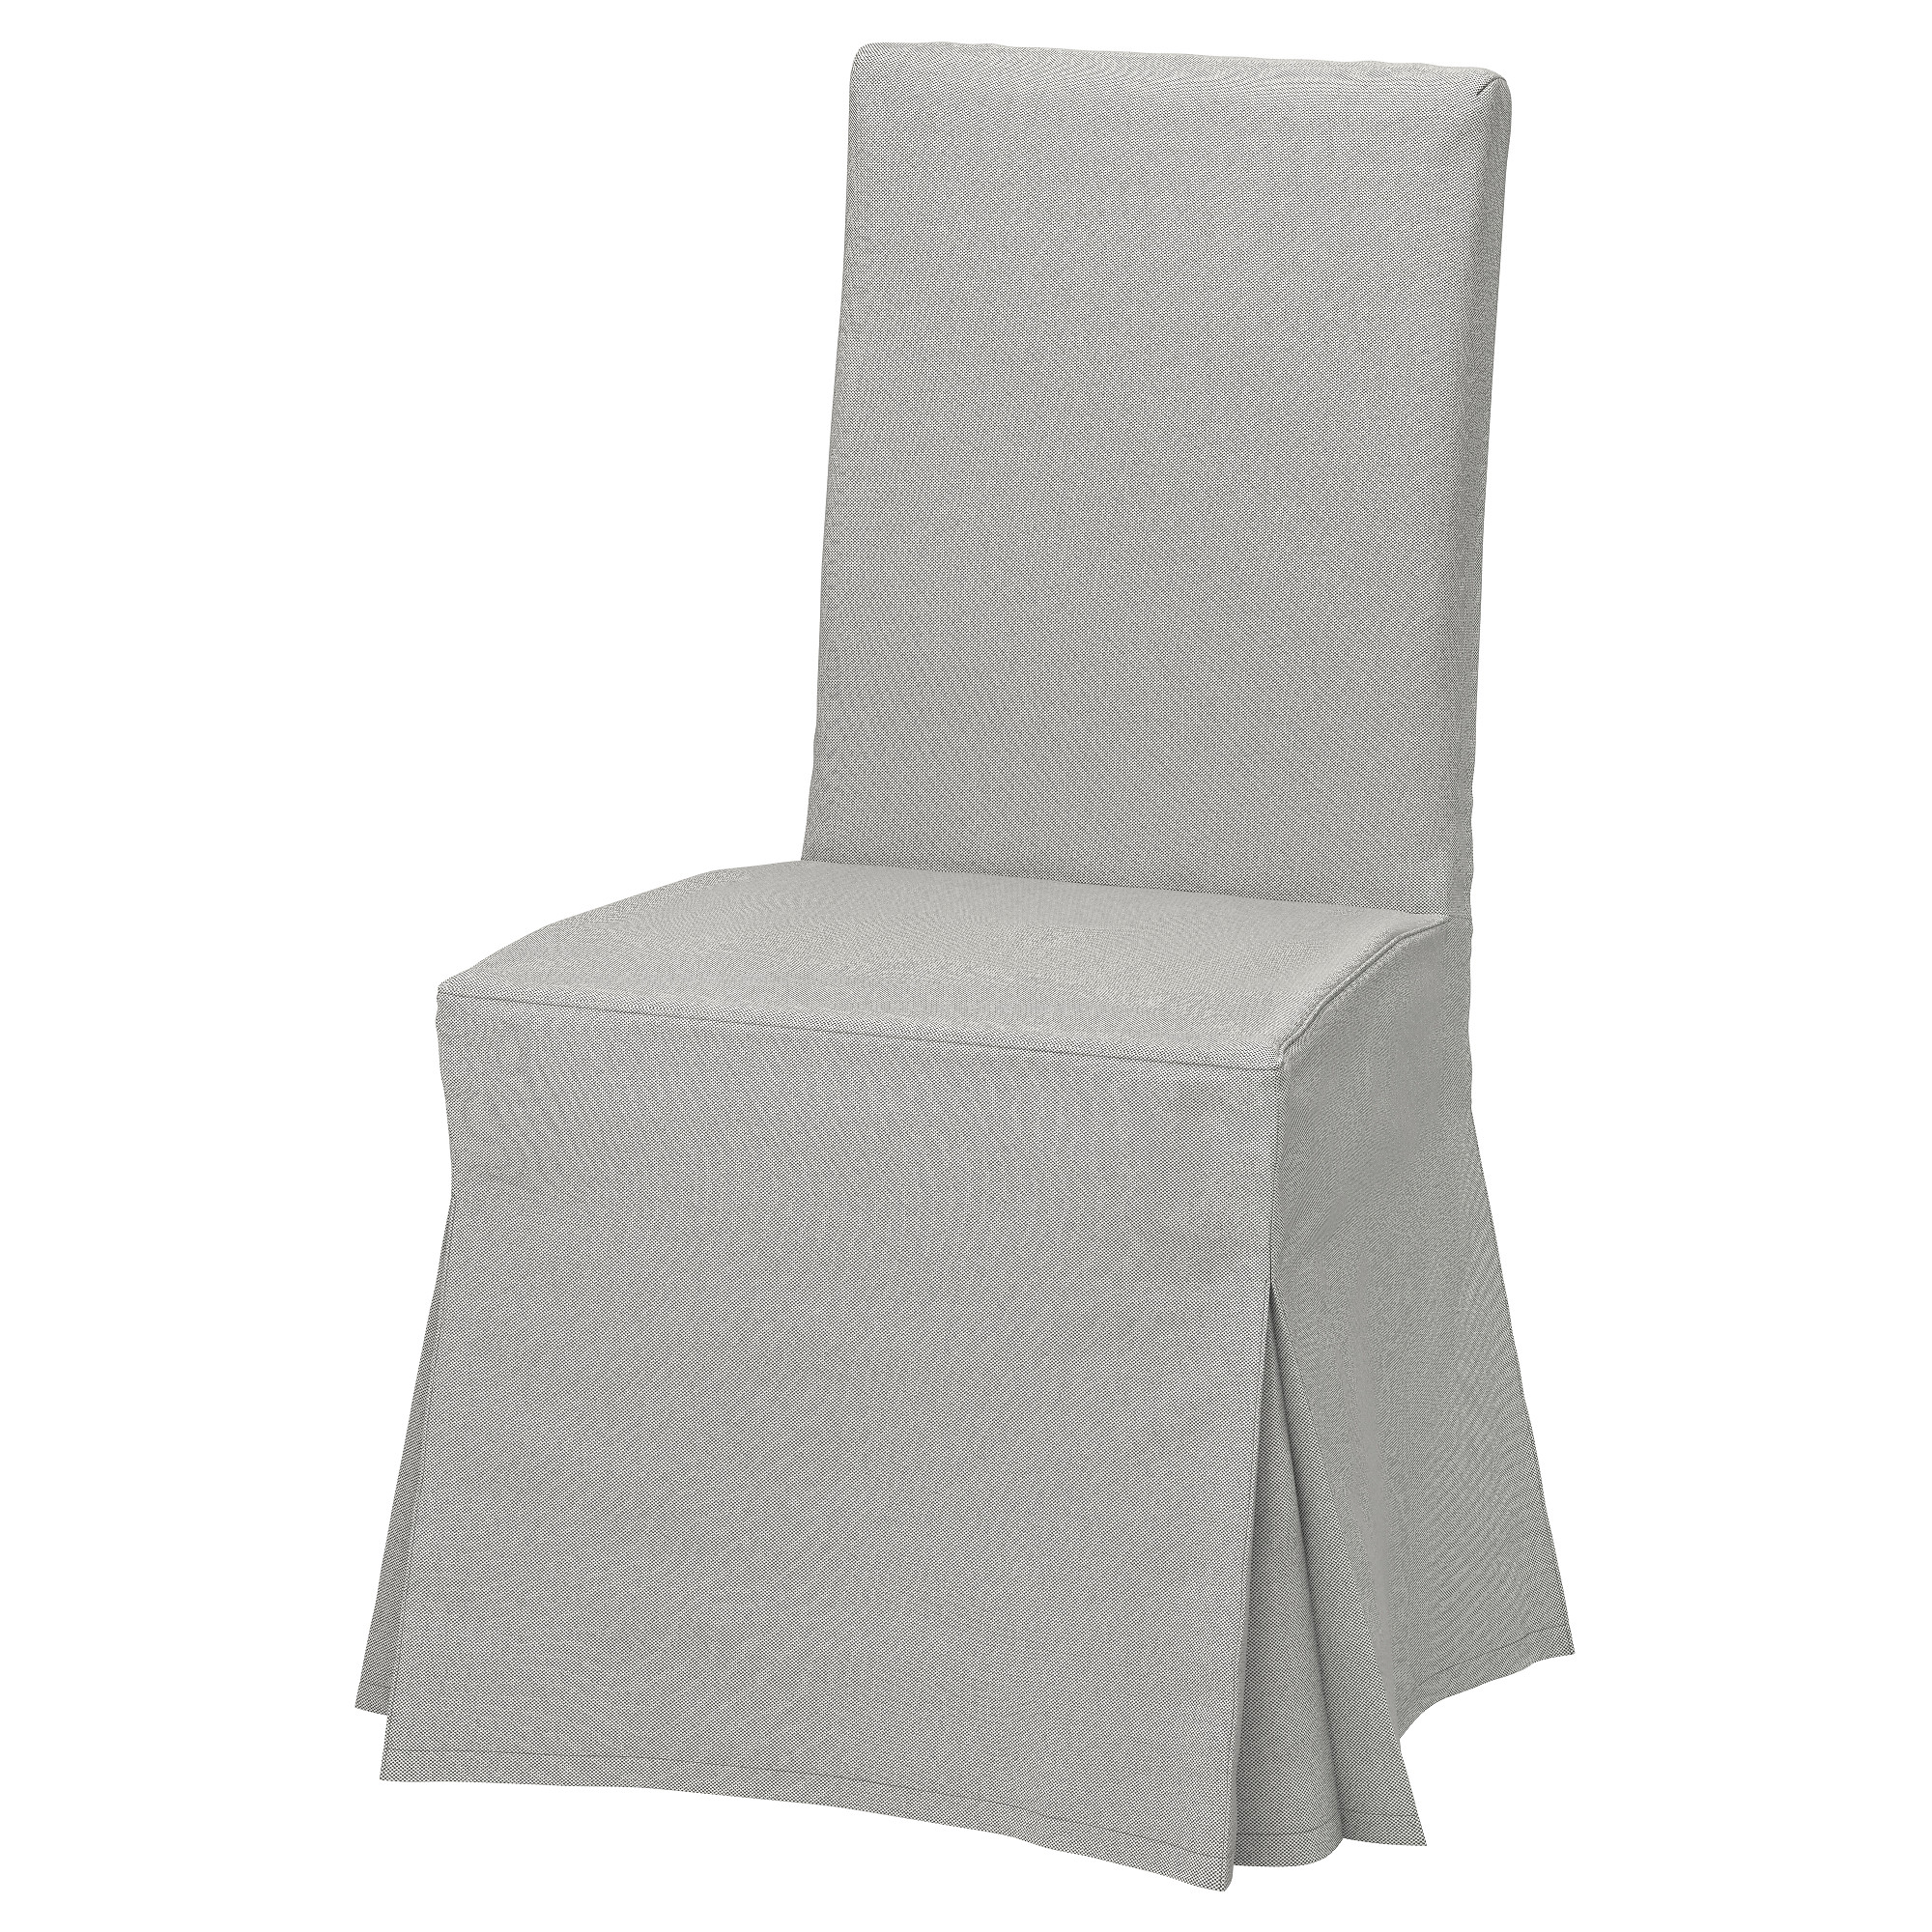 Chair Covers IKEA